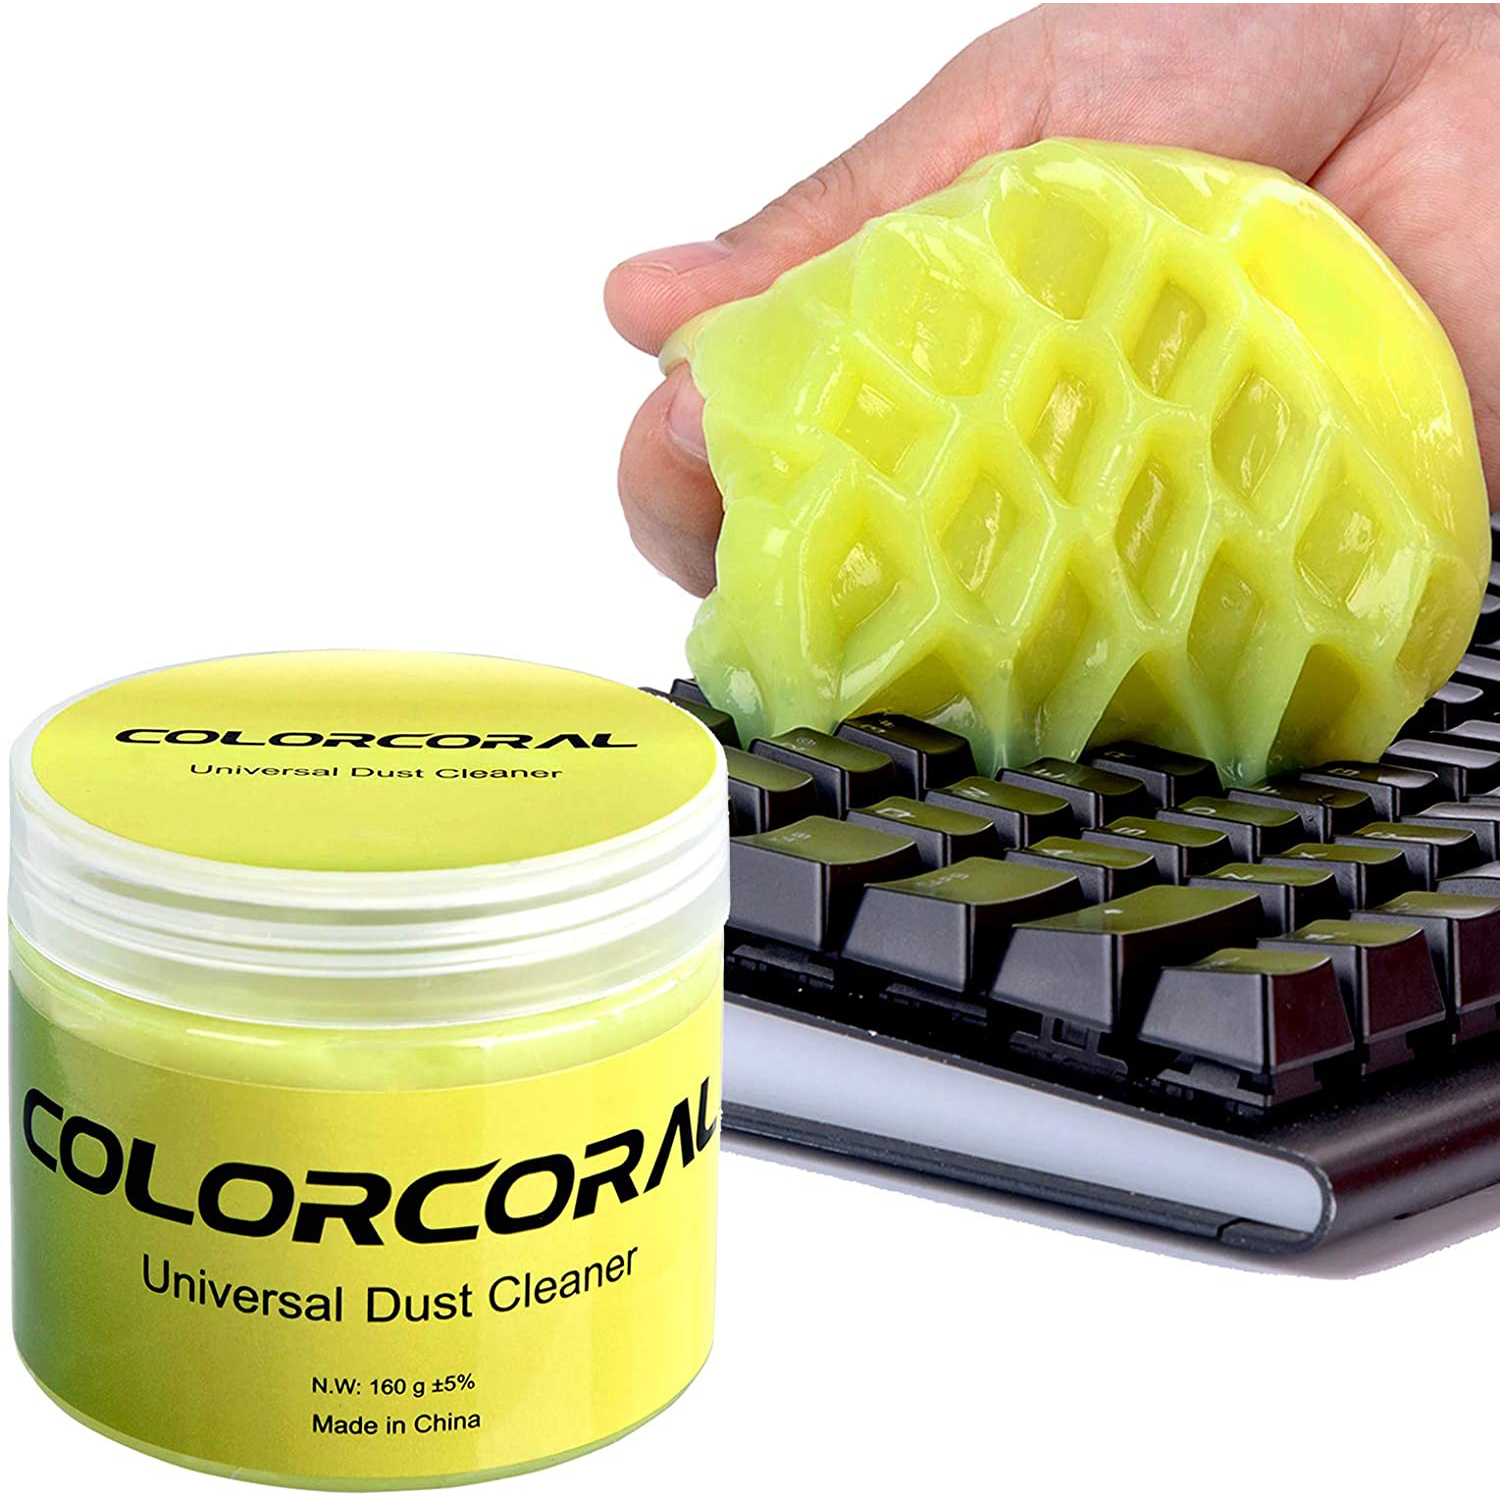 Colorcoral dust cleaner